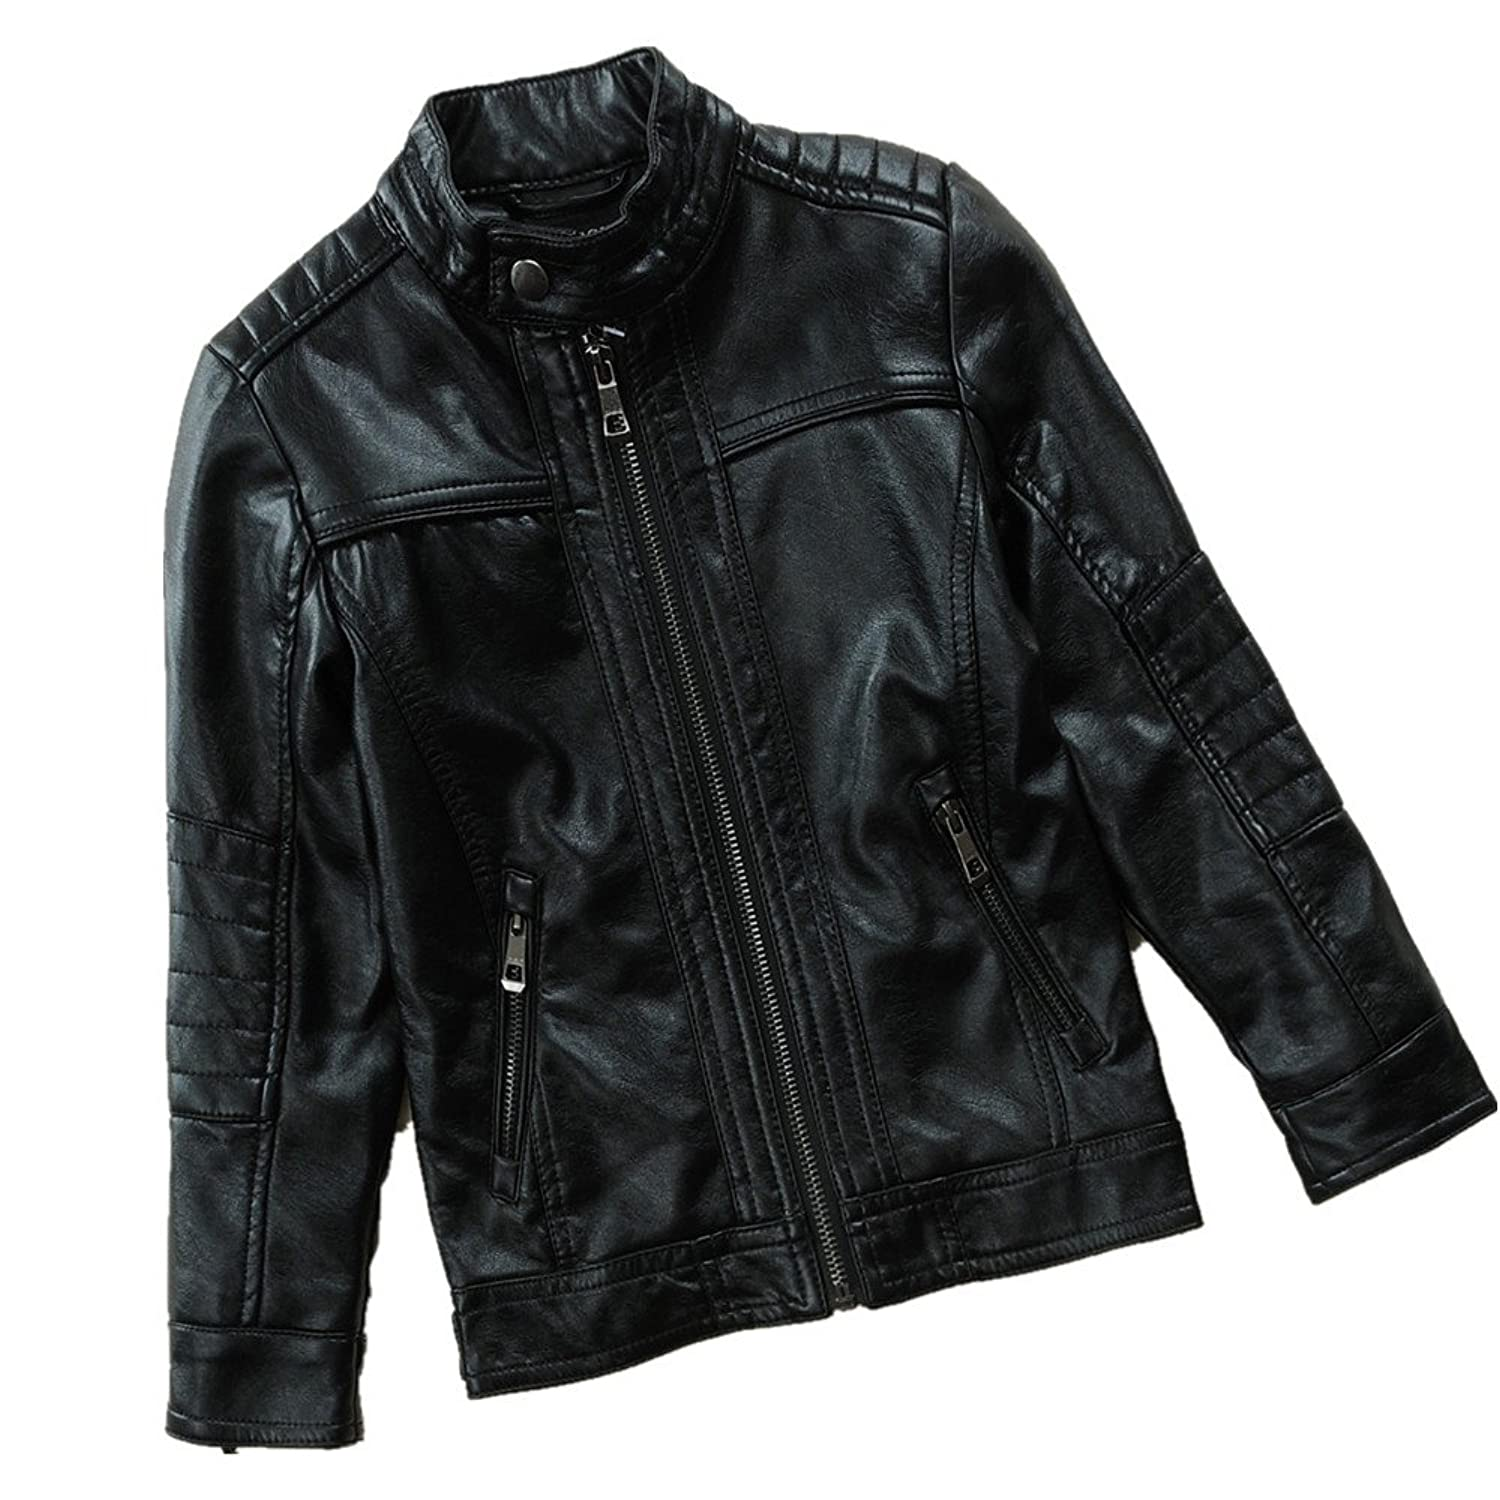 a2b28feb7ee7 Top 10 wholesale Leather Jacket 2016 - Chinabrands.com